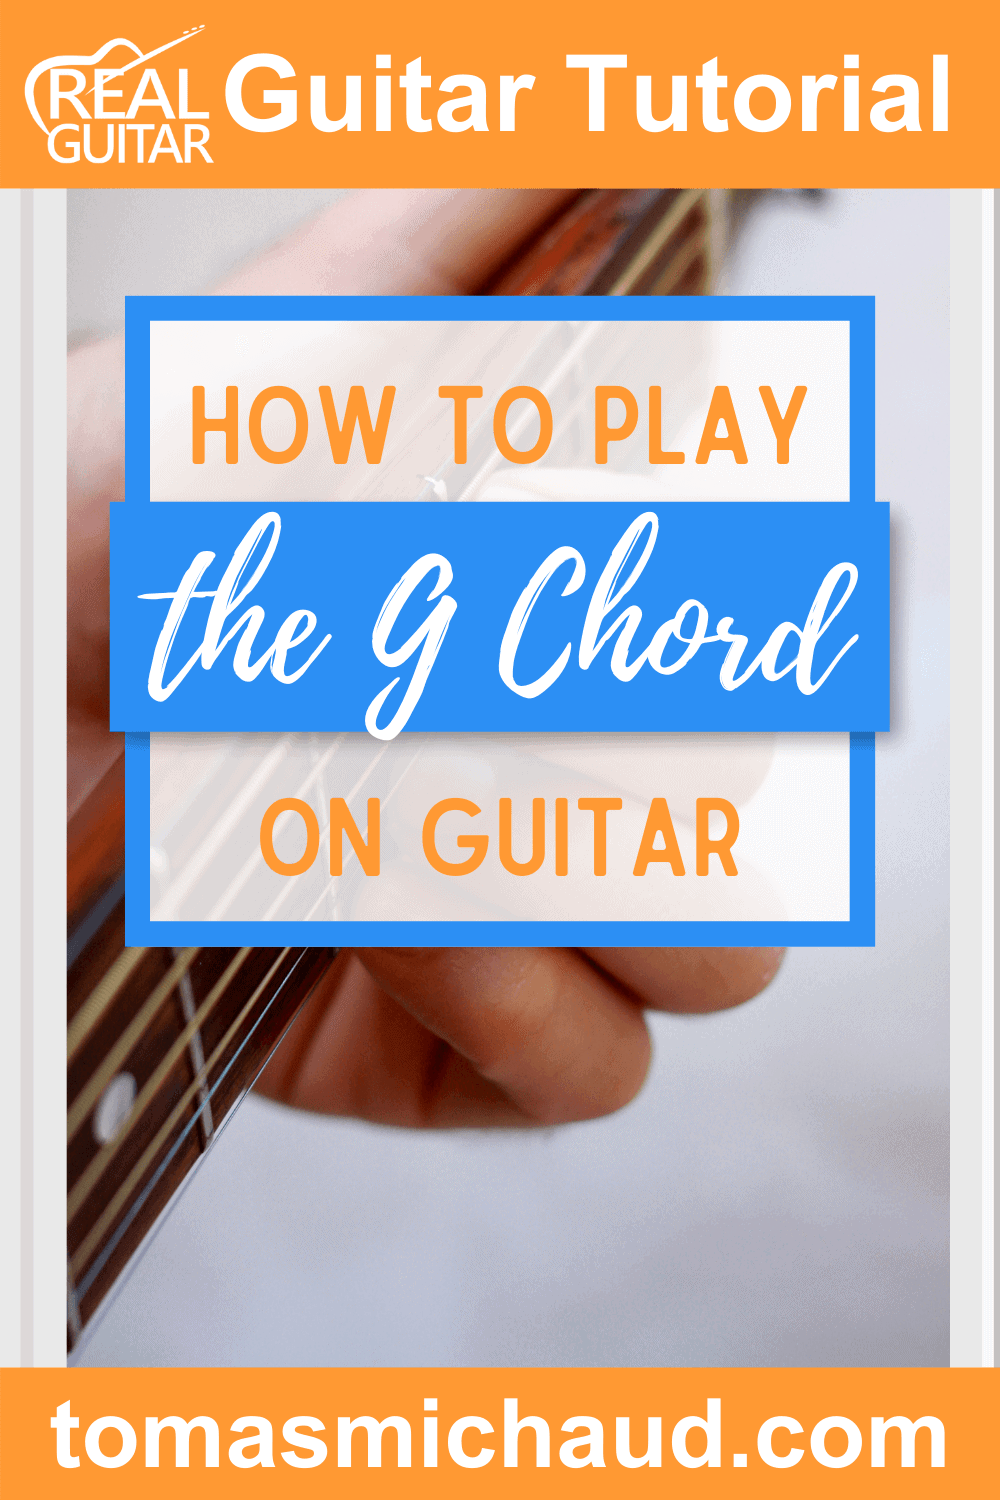 HOW TO PLAY THE G CHORD ON GUITAR